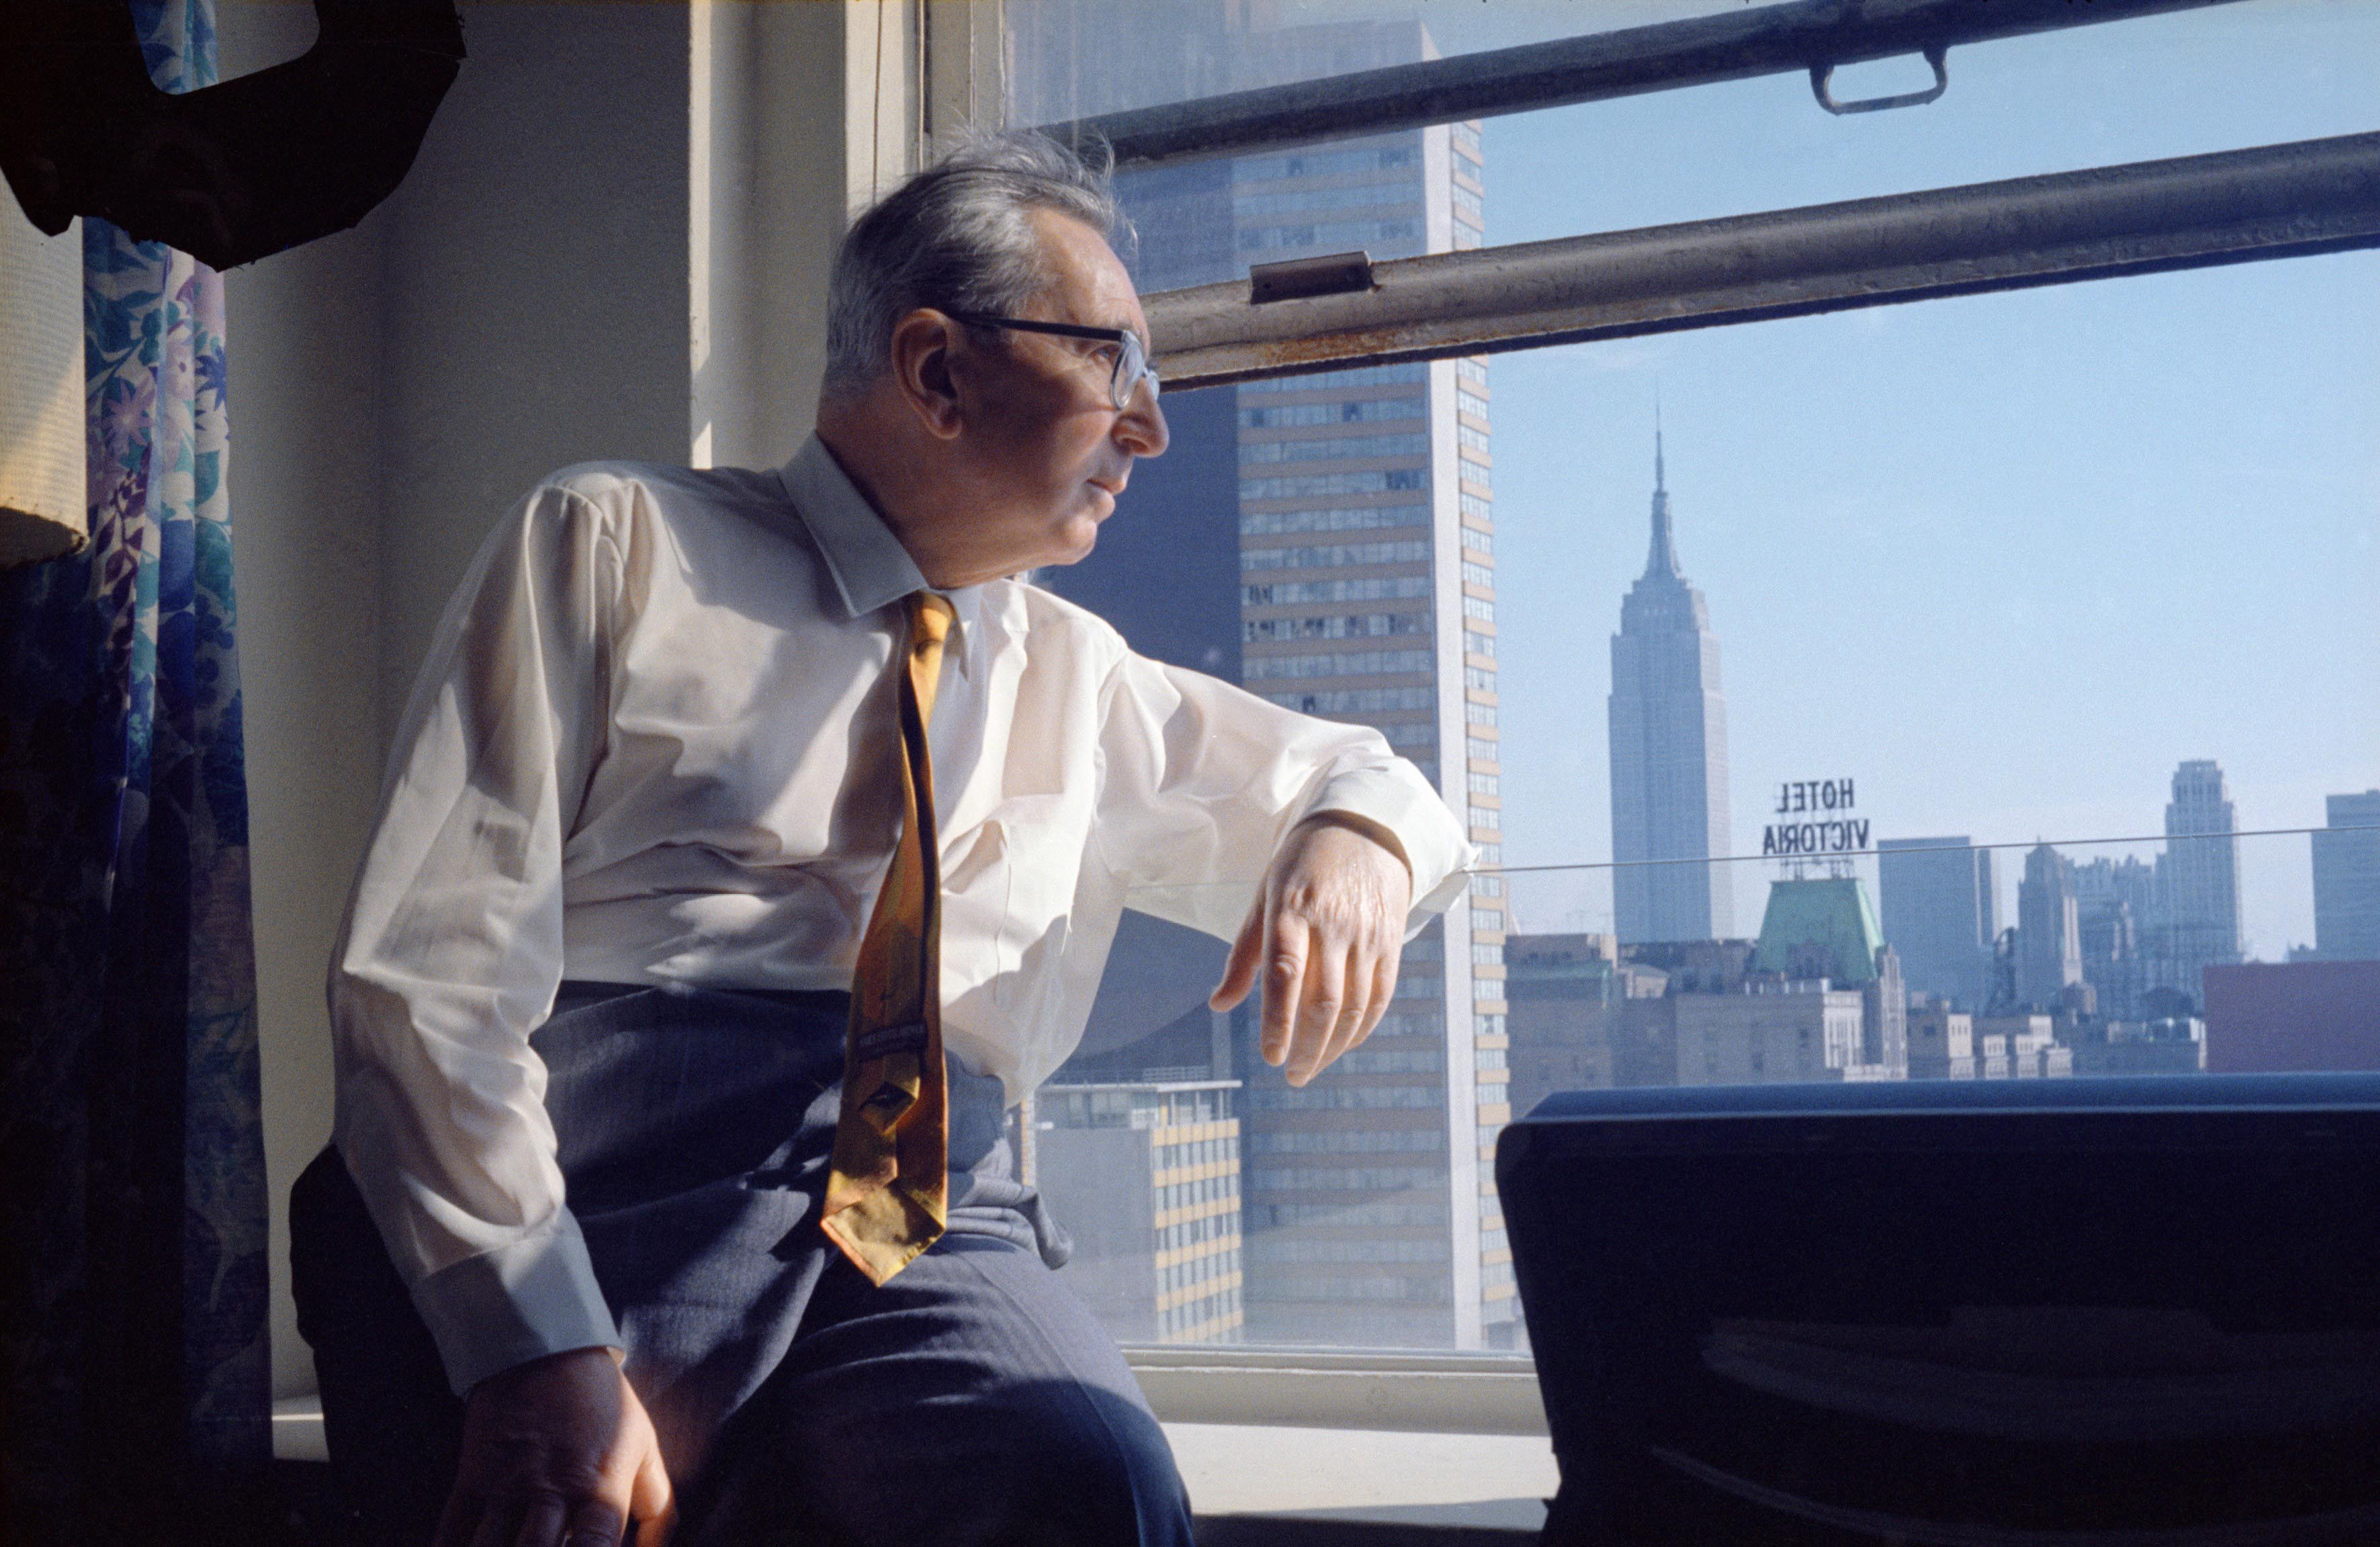 An archival photo of Viktor Frankl in New York City looking out the window, 1968.